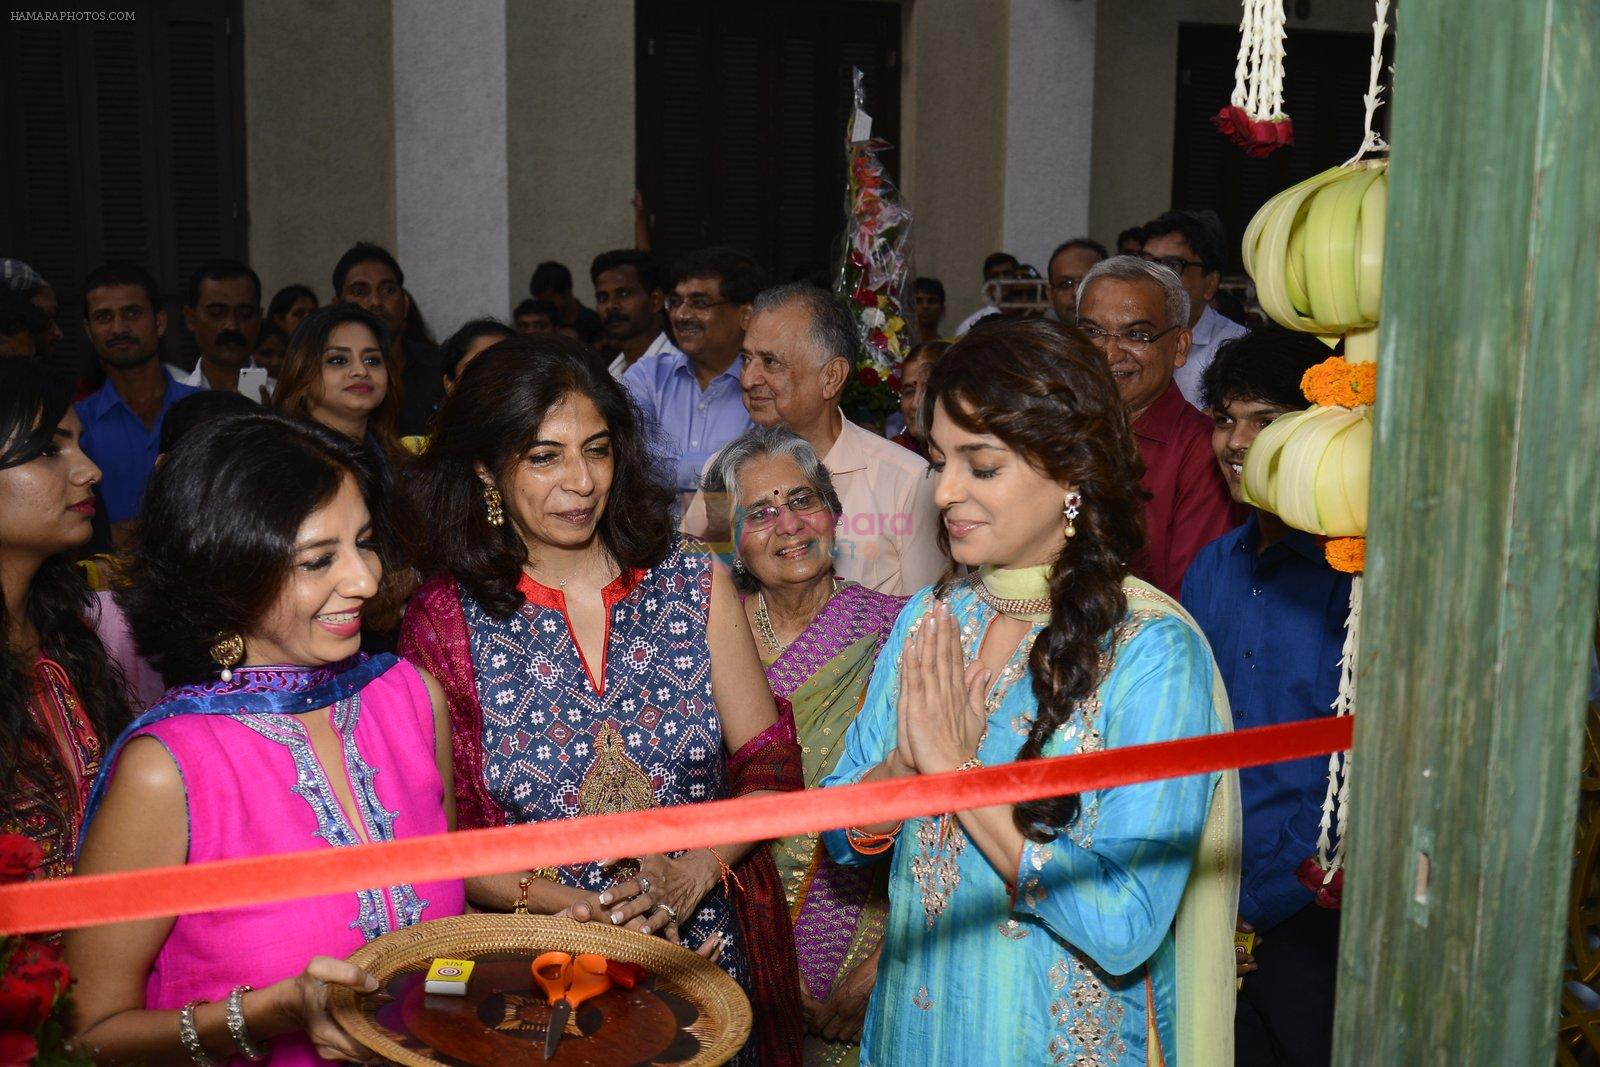 Juhi Chawla innaugurates Gopi Vaid's new store on 15th Oct 2016